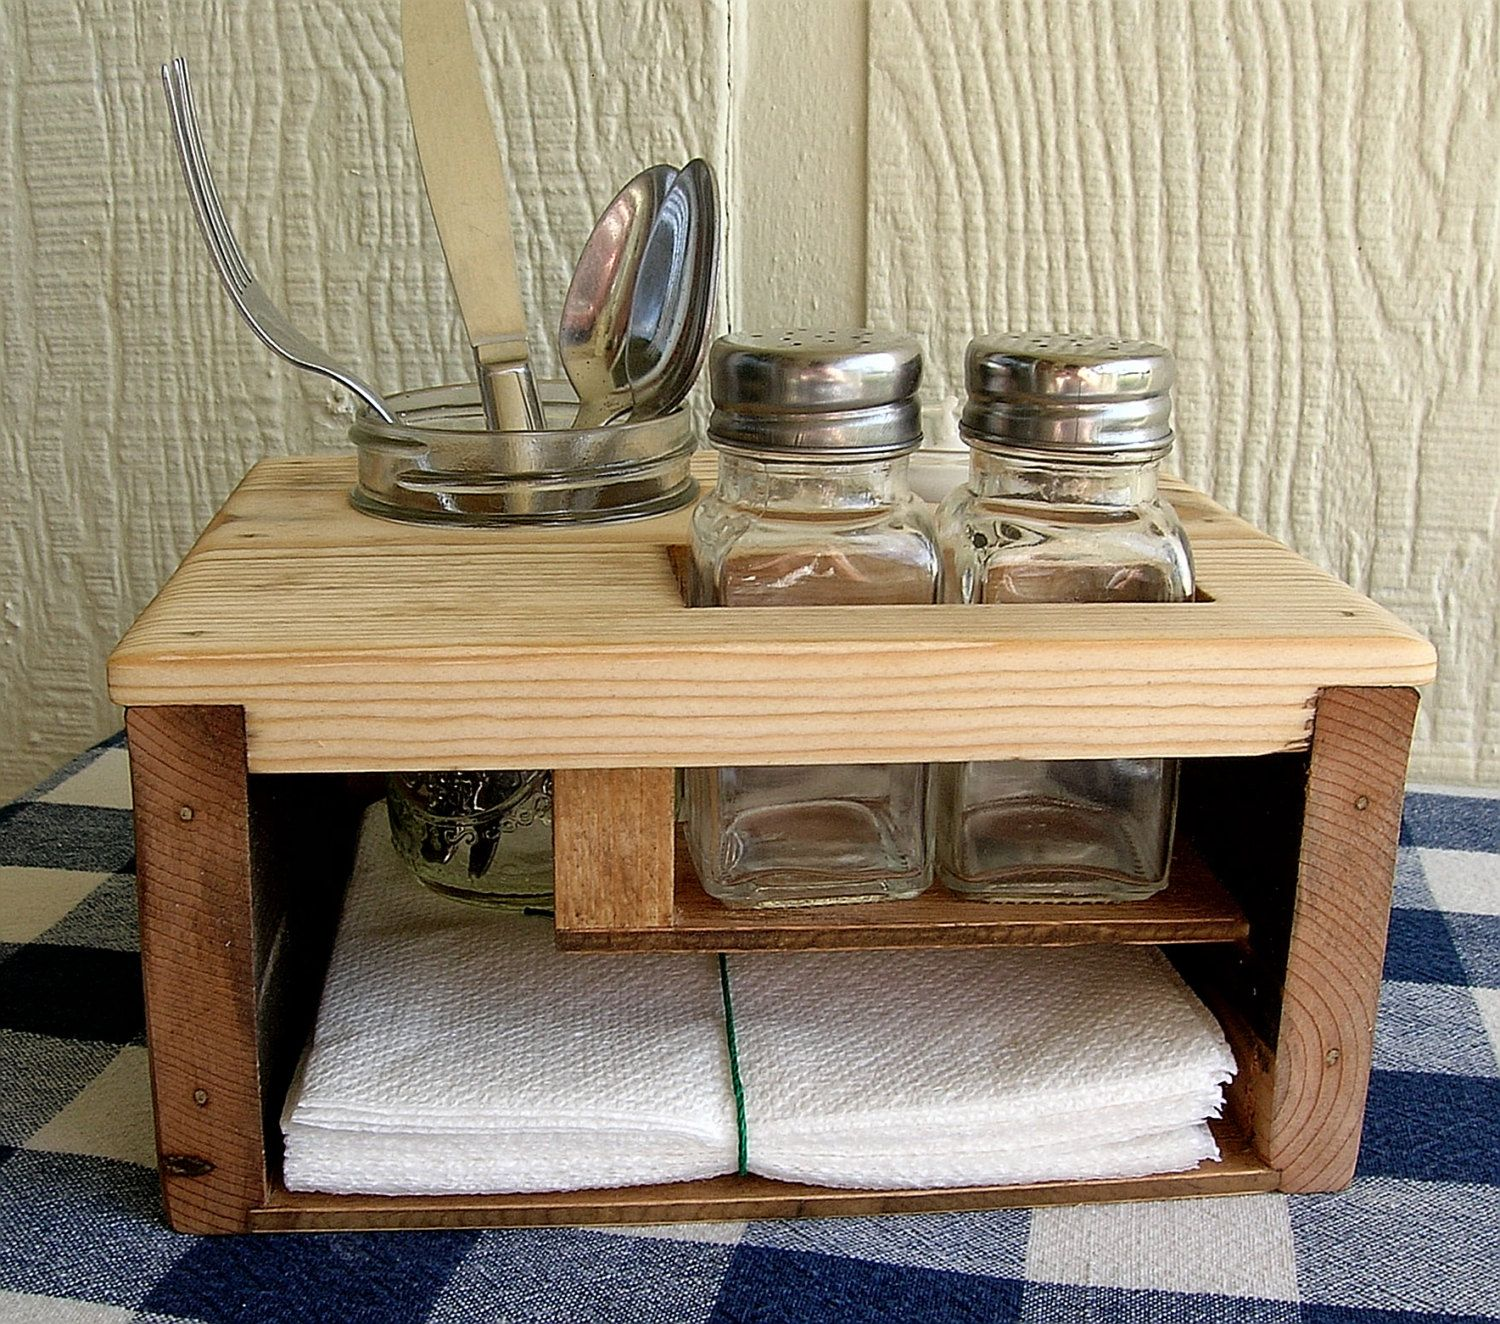 Kitchen Table Organizer Picnic Caddy Silverware Salt And Pepper Napkin Candle Holder By Irishdayfair On Etsy